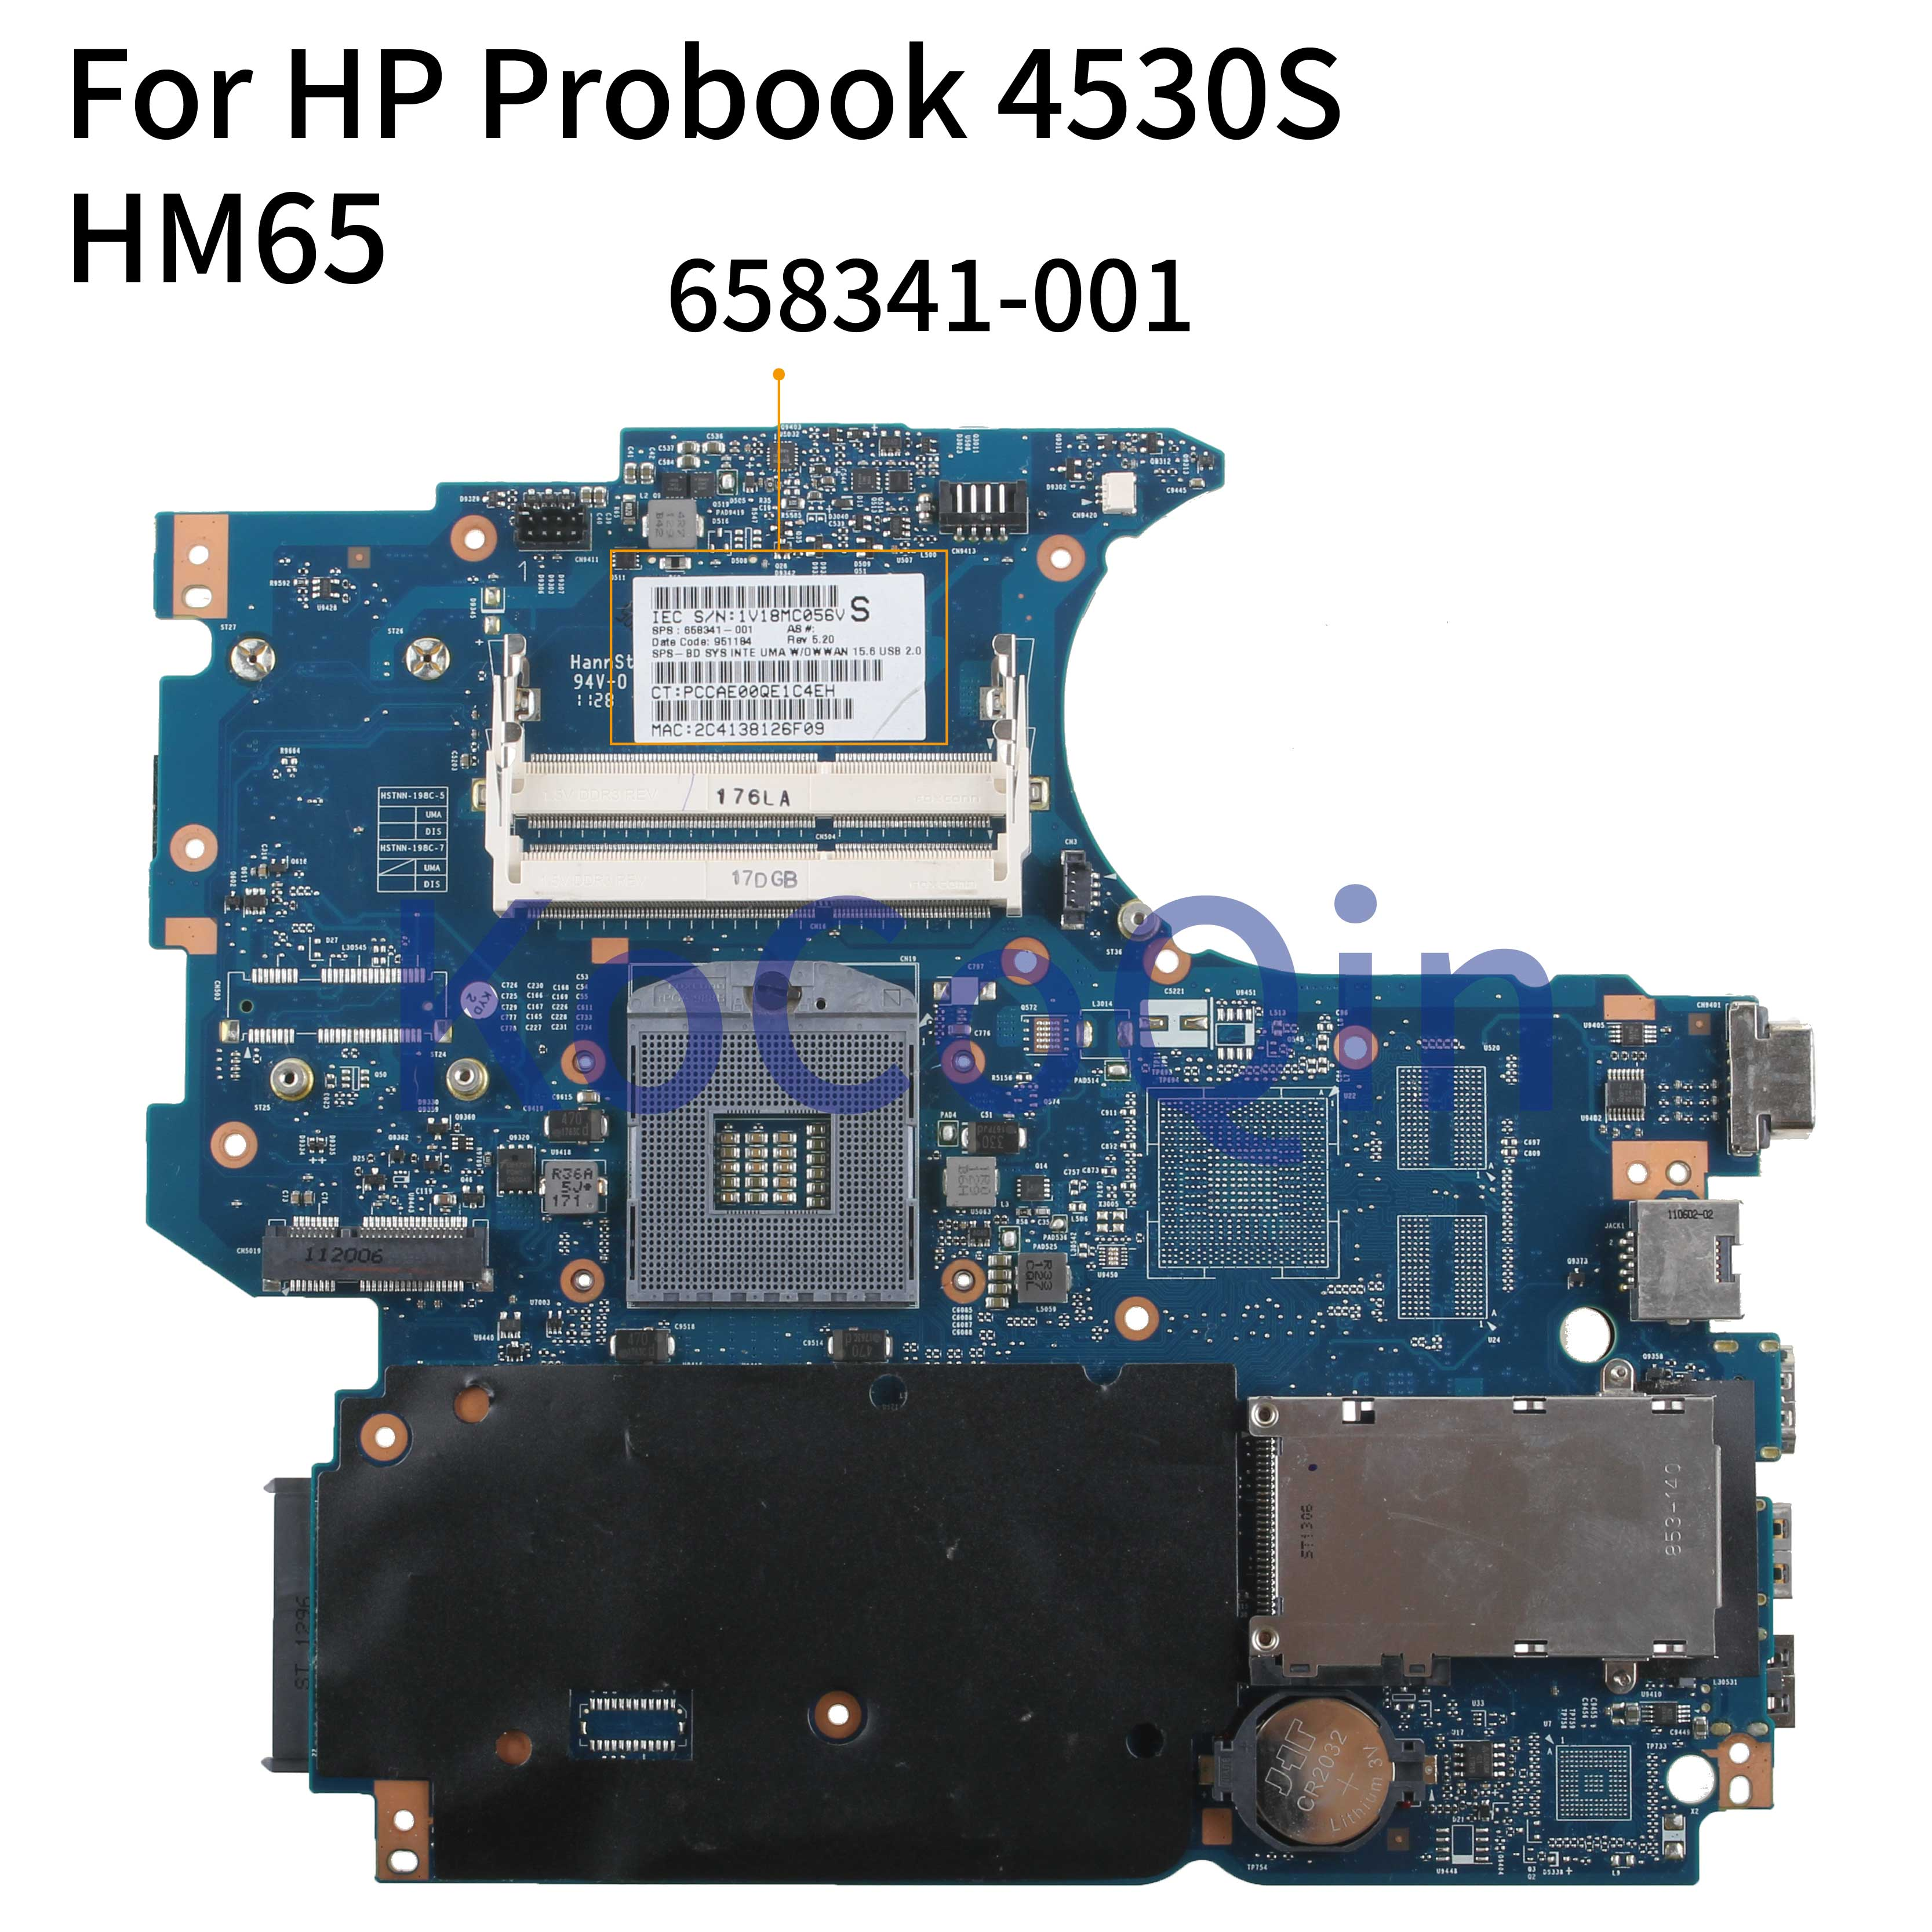 KoCoQin Laptop Motherboard For HP Probook 4530S 4730S Core HM65 Mainboard 658341-001 658341-501 Tested